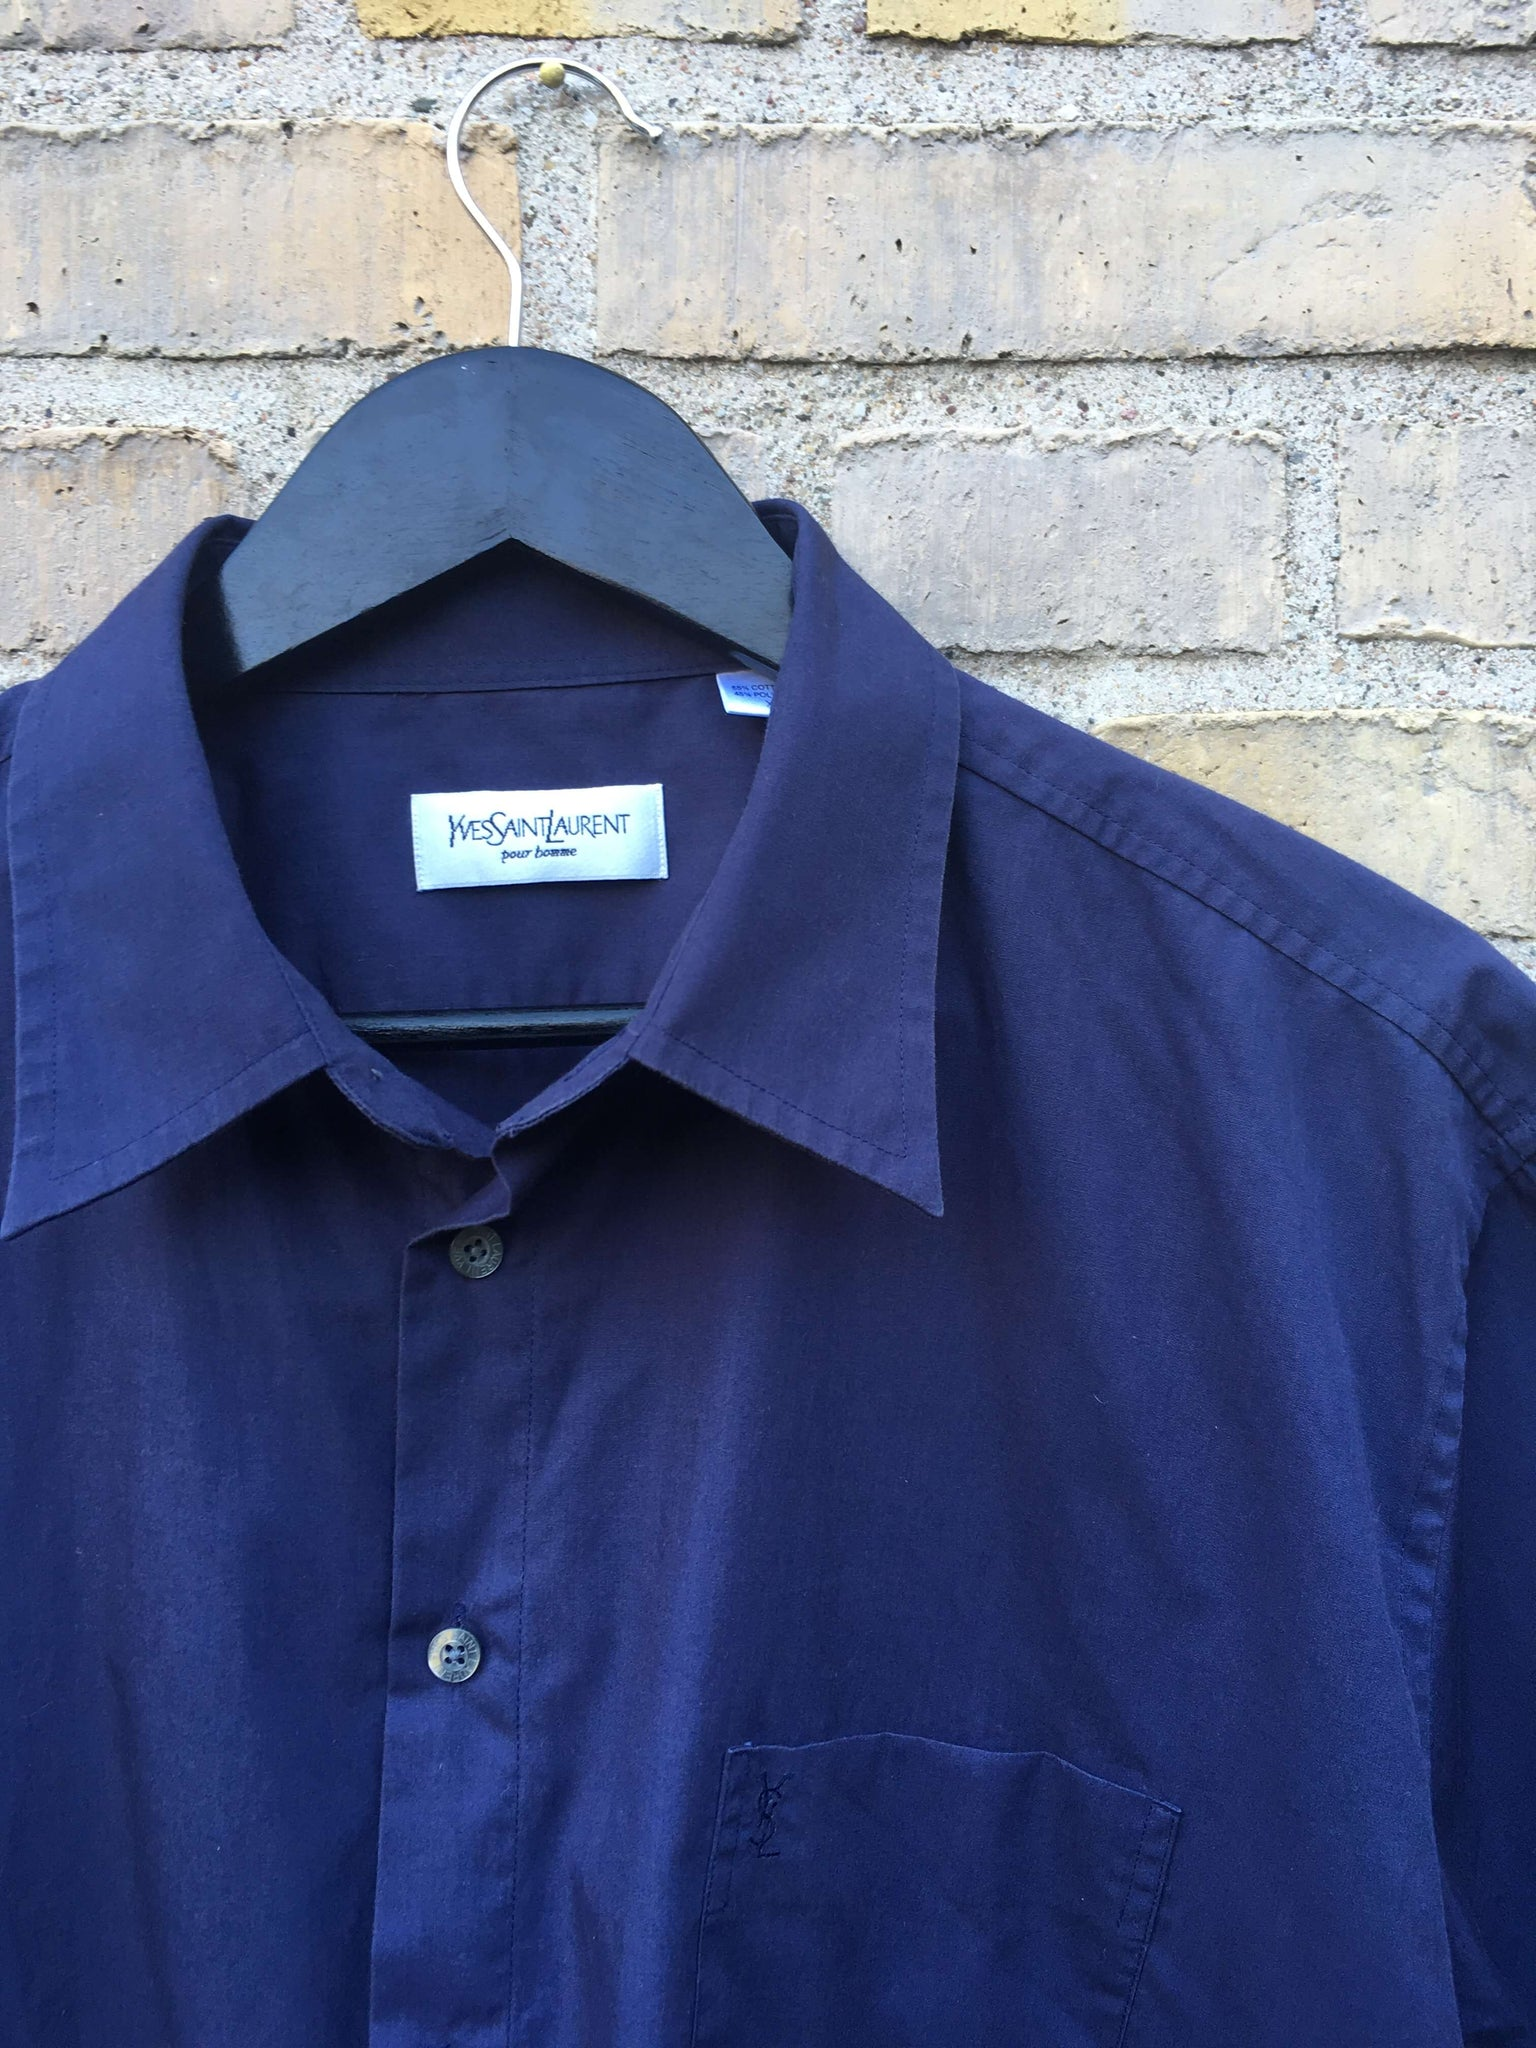 Vintage Yves Saint Laurent Skjorte, XL